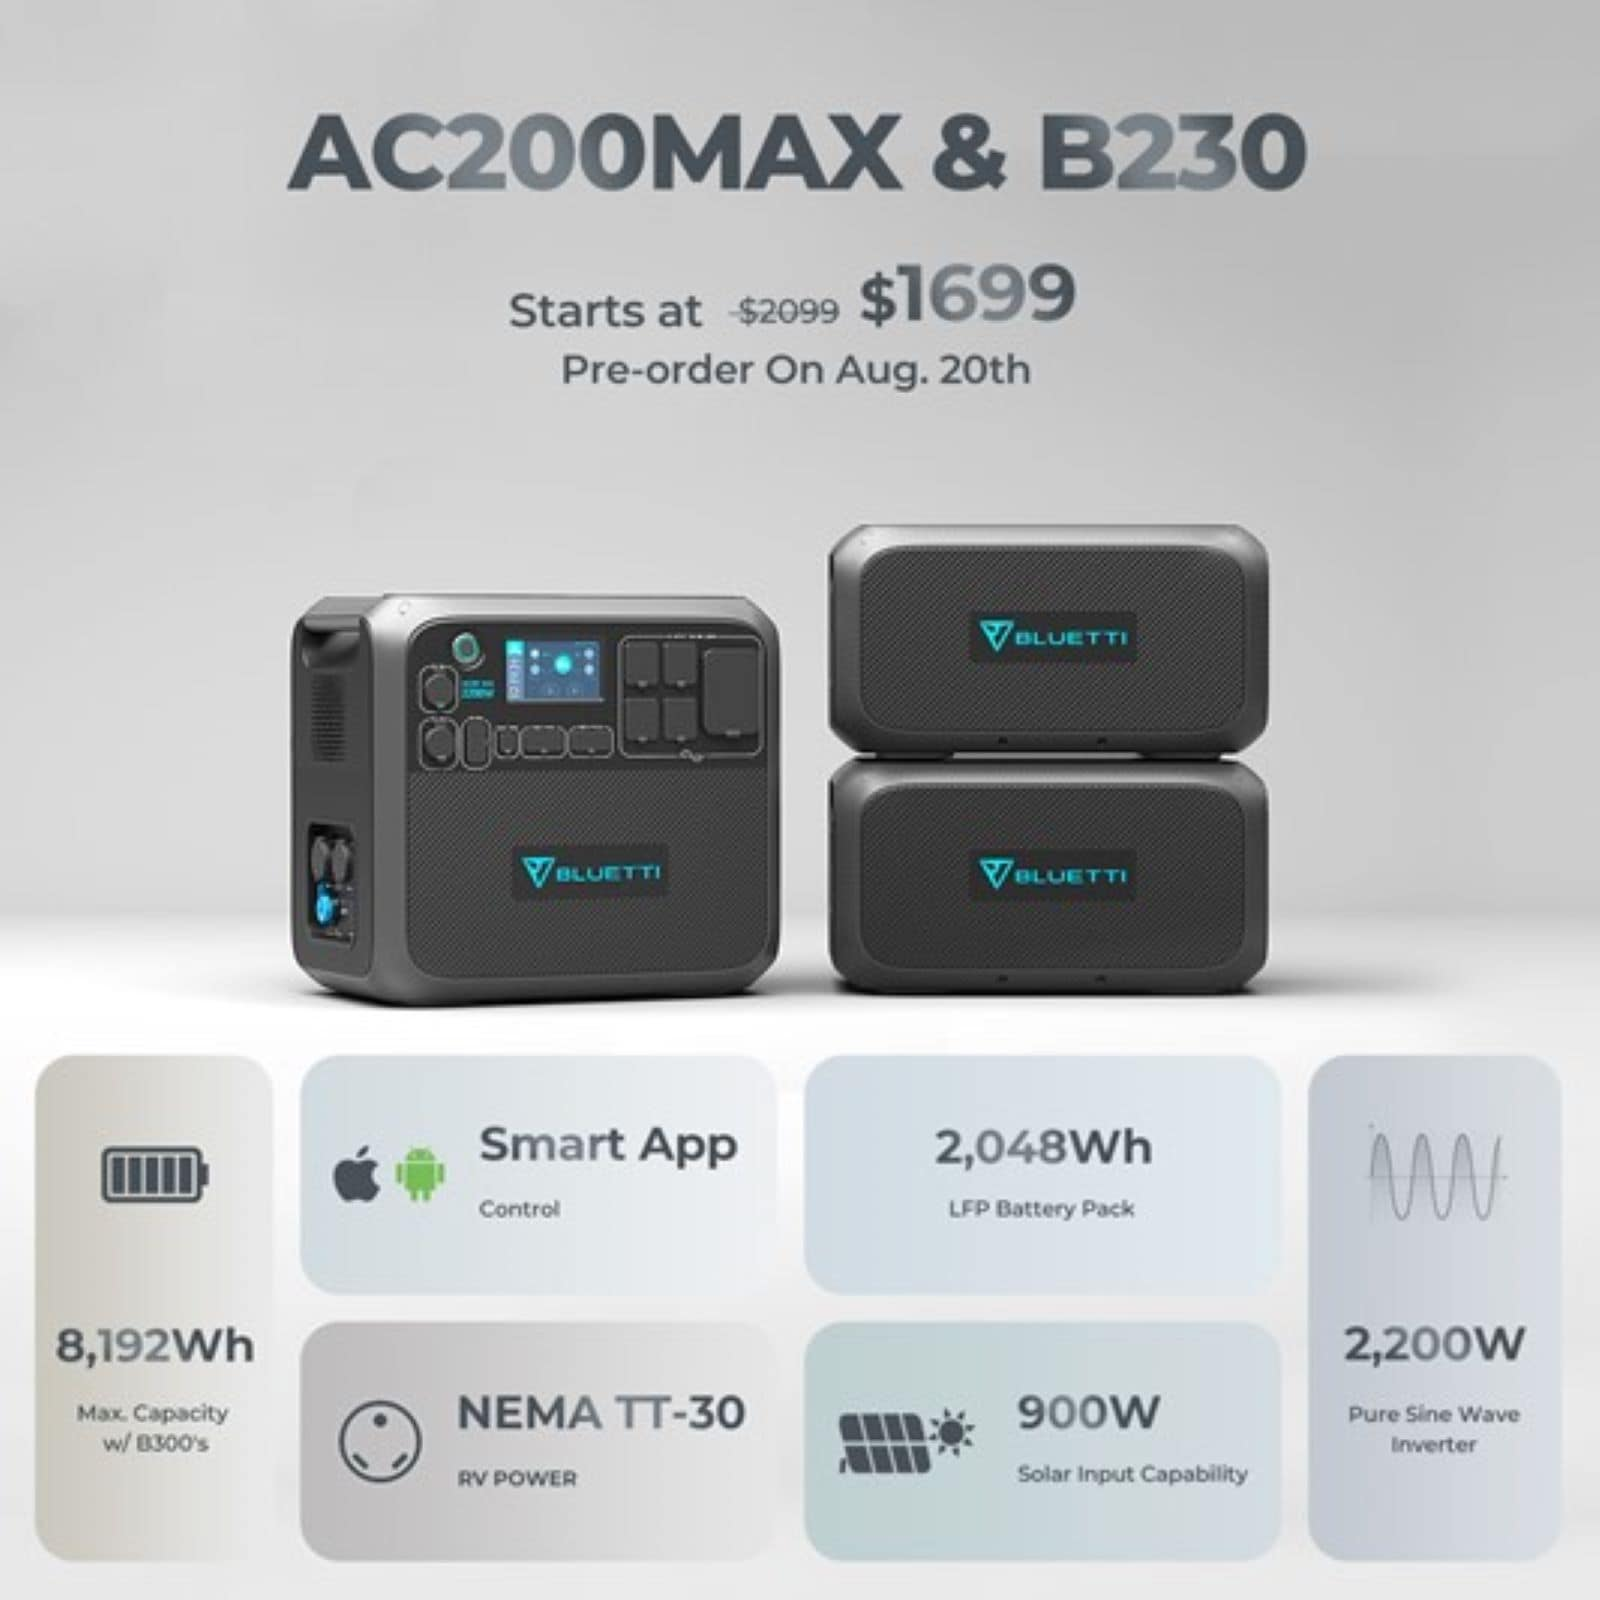 You can pair the Bluetti AC200 MAX portable power station and B230 battery module at $500 for Bluetti Power Week.